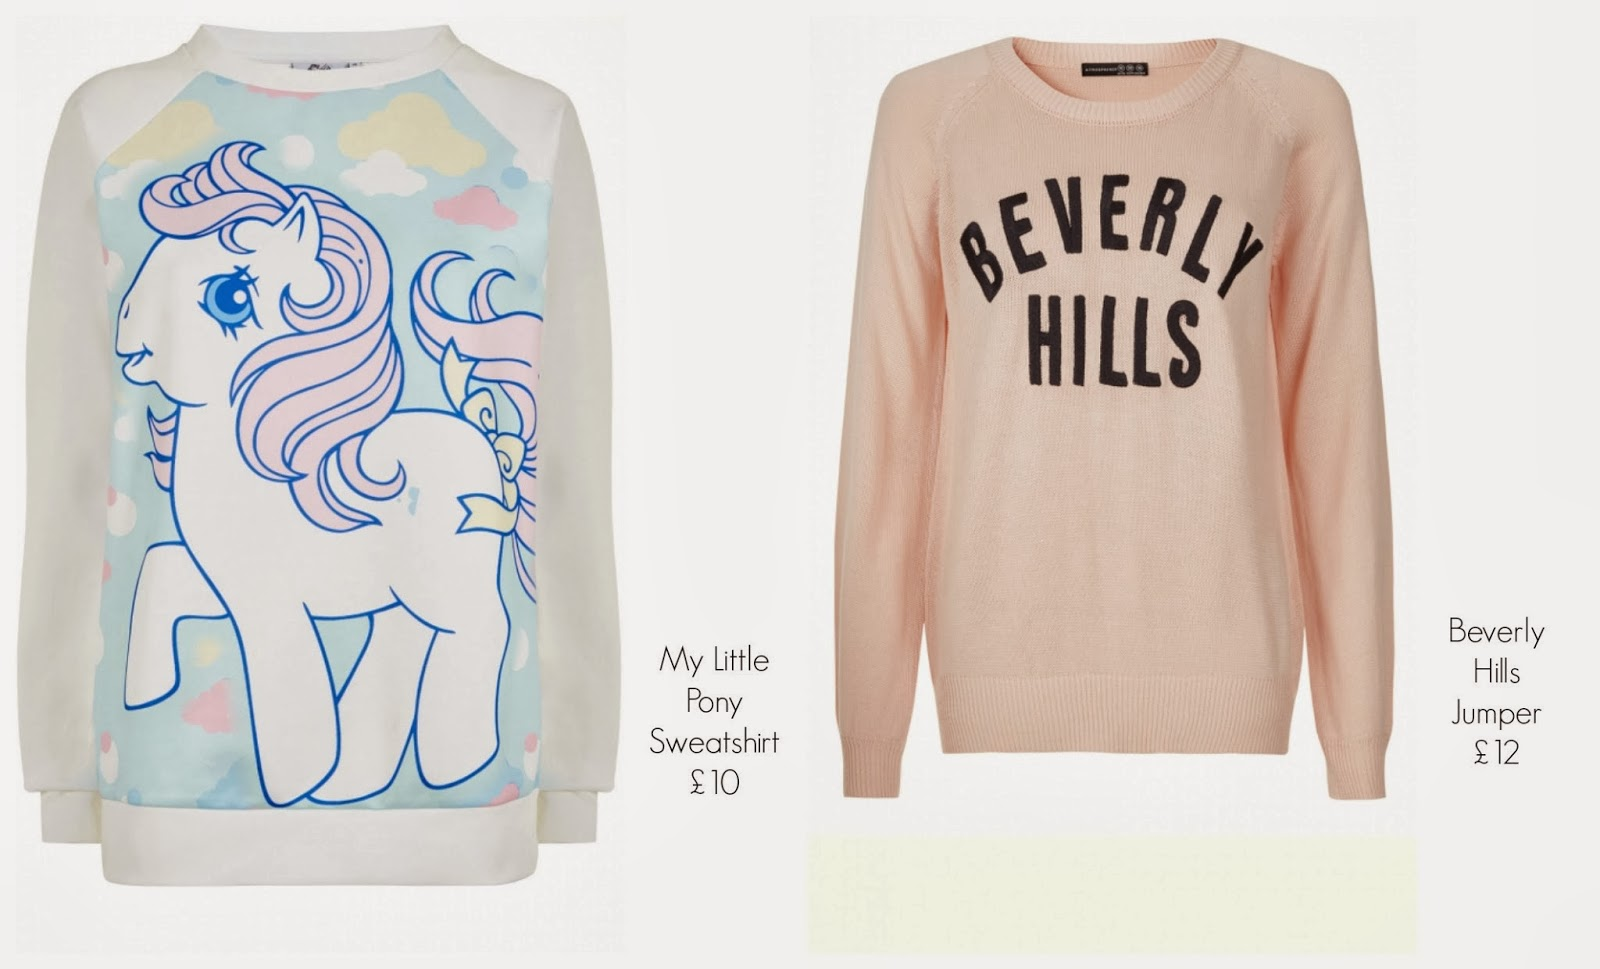 Primark-My-Little-Pony-&-Beverly-Hills-Jumper-SS14